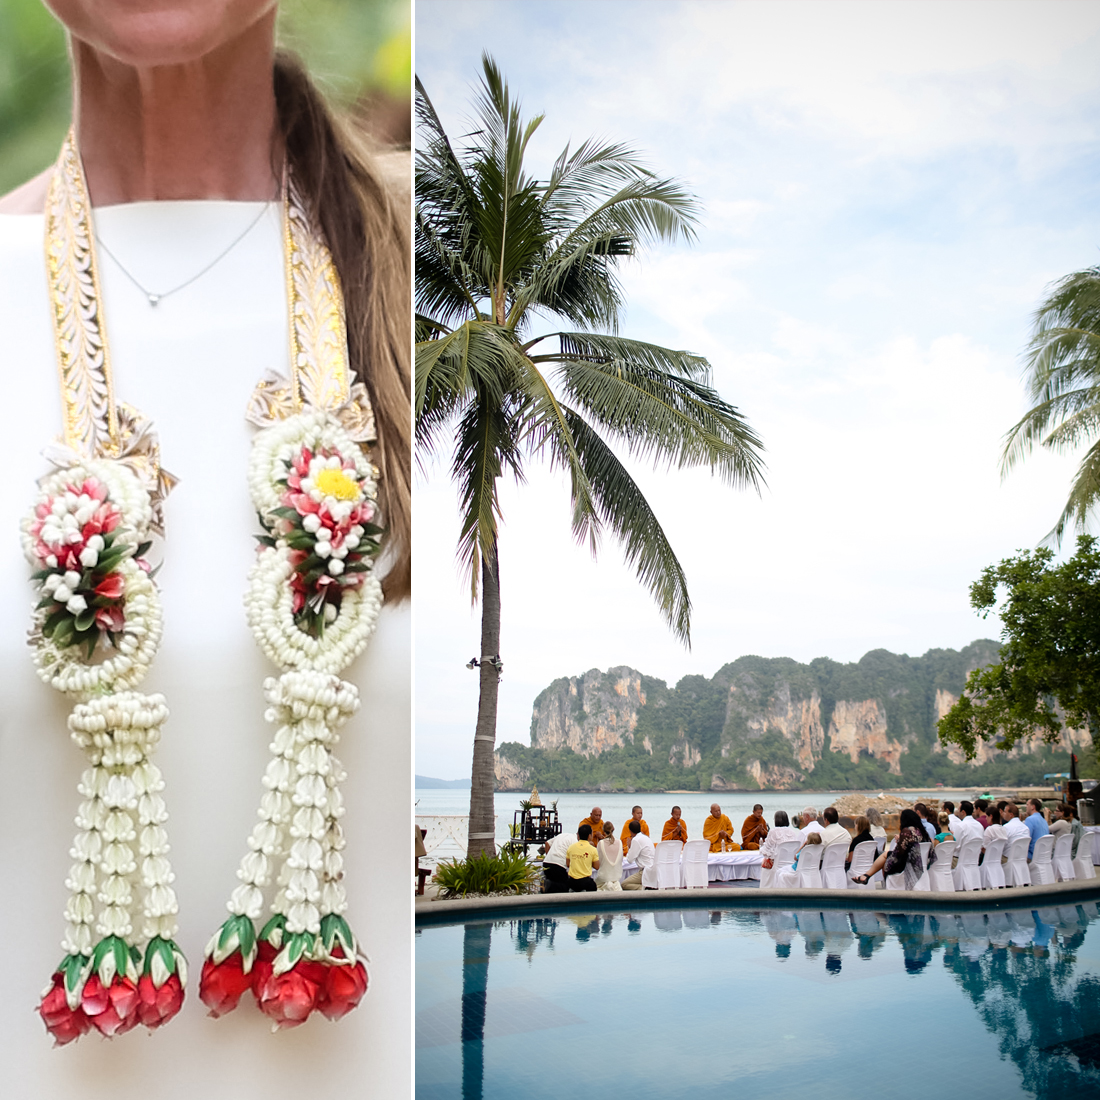 """What made you choose to have a destination wedding? """"We looked at a few local venues, but deep down, we knew that Thailand was the right place for us to say our vows. We couldn't find a place close to home that offered the same natural beauty and cultural experience of Thailand. We are both travelers, having been to over 20 different countries together. We wanted our wedding to be an experience that our guests wouldn't soon forget.   """"My family lives on the East Coast, and my husband's family is primarily in the Midwest. We knew that they would all need to travel anyway, and the costs to come to California were actually higher than the costs to travel to Thailand (although the flight was much longer!)."""" Source: Melissa McClure Photography"""